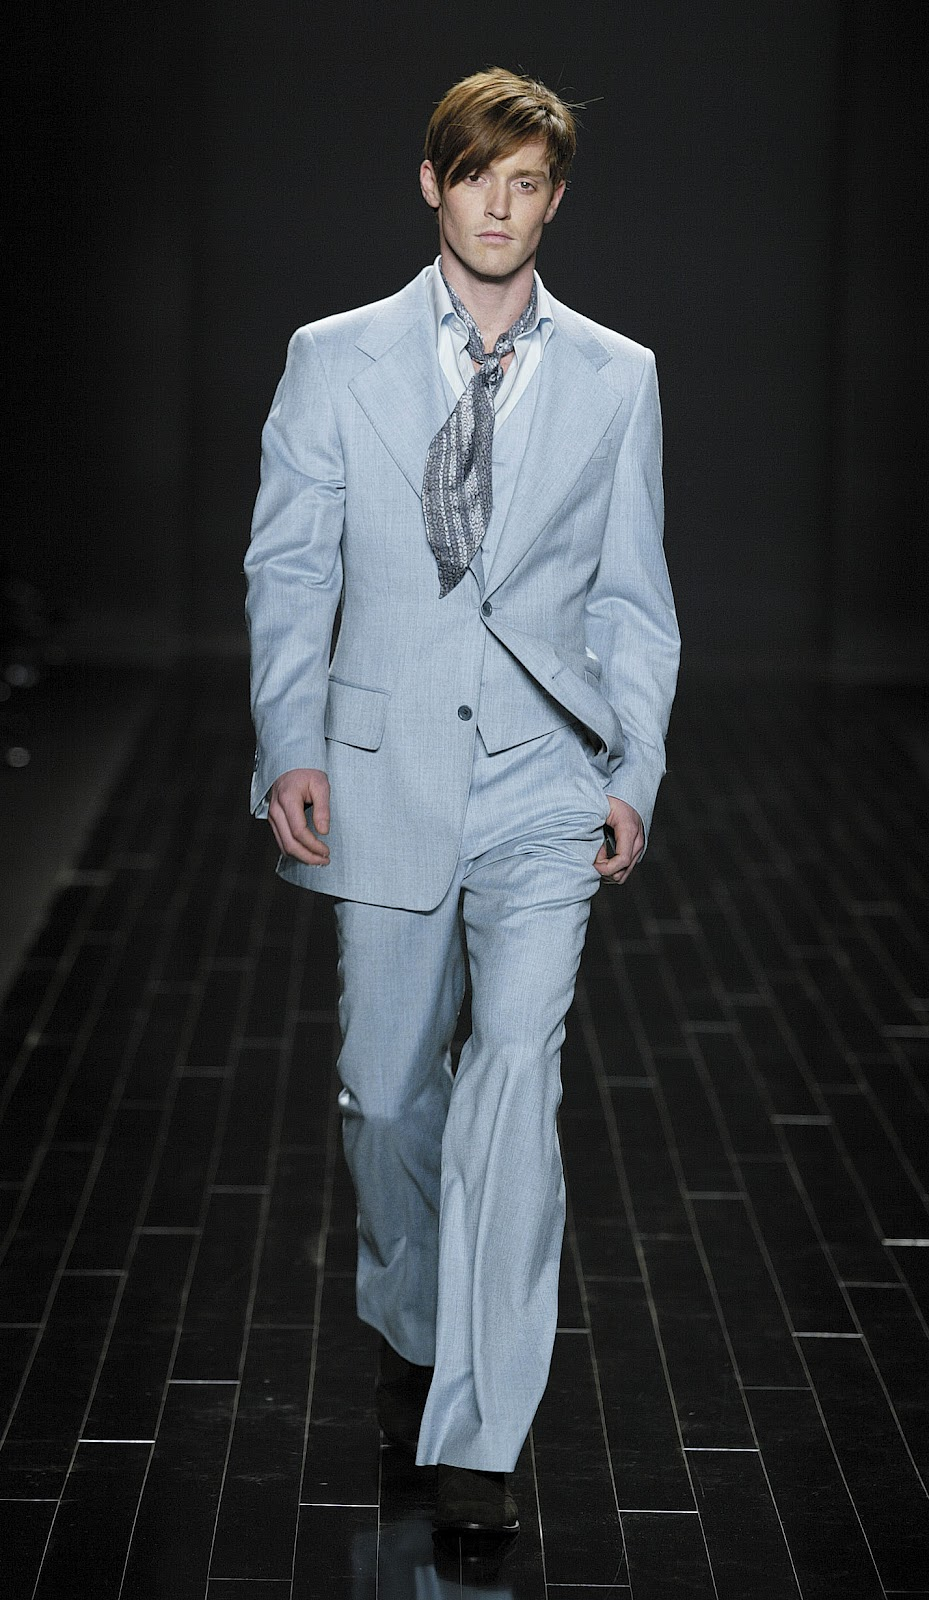 Fashion Apparel 2012: Shirt and Tie Combinations - photo#41